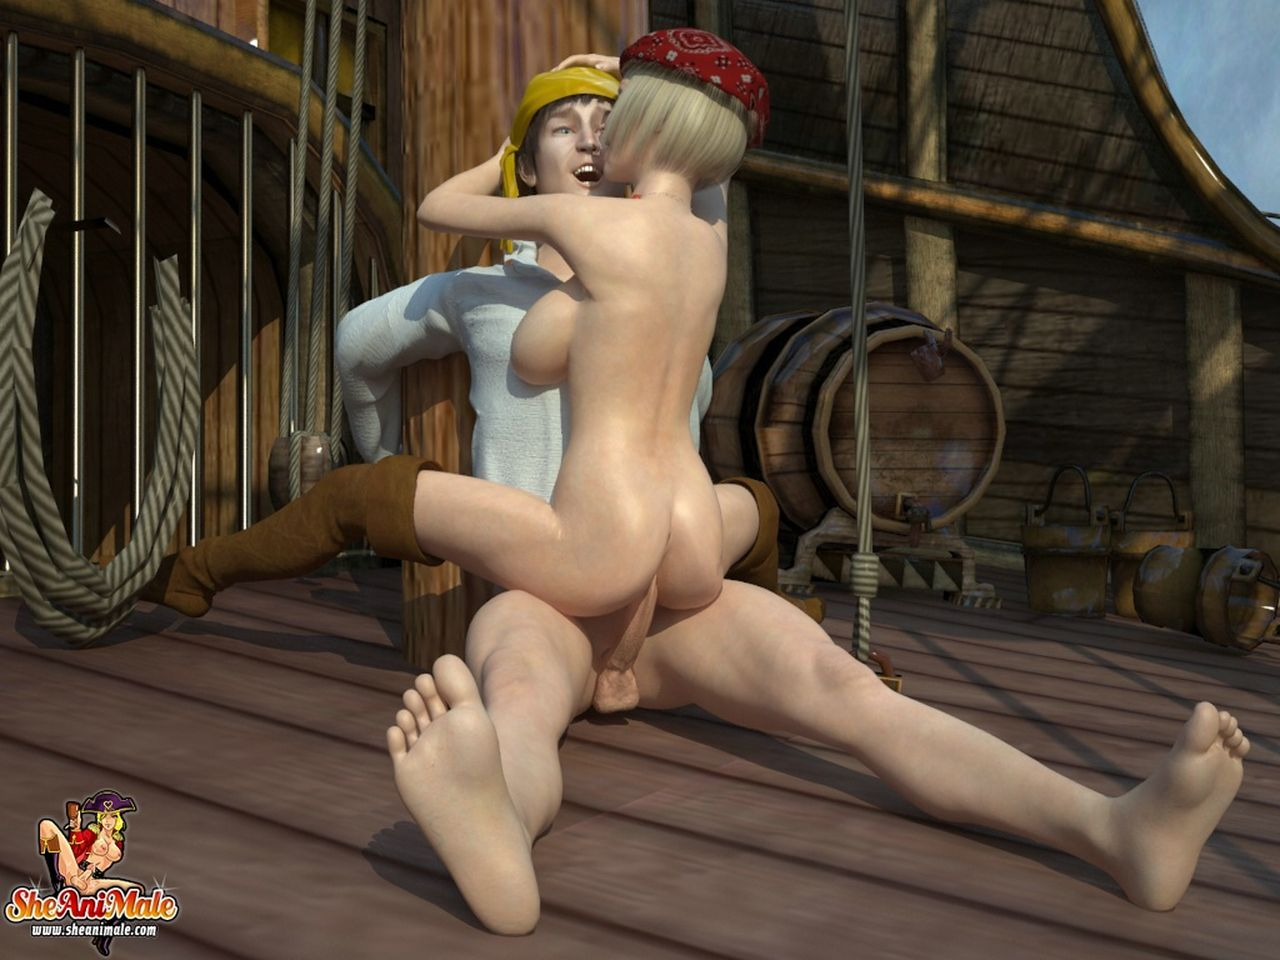 Pirate xxx image erotic toons